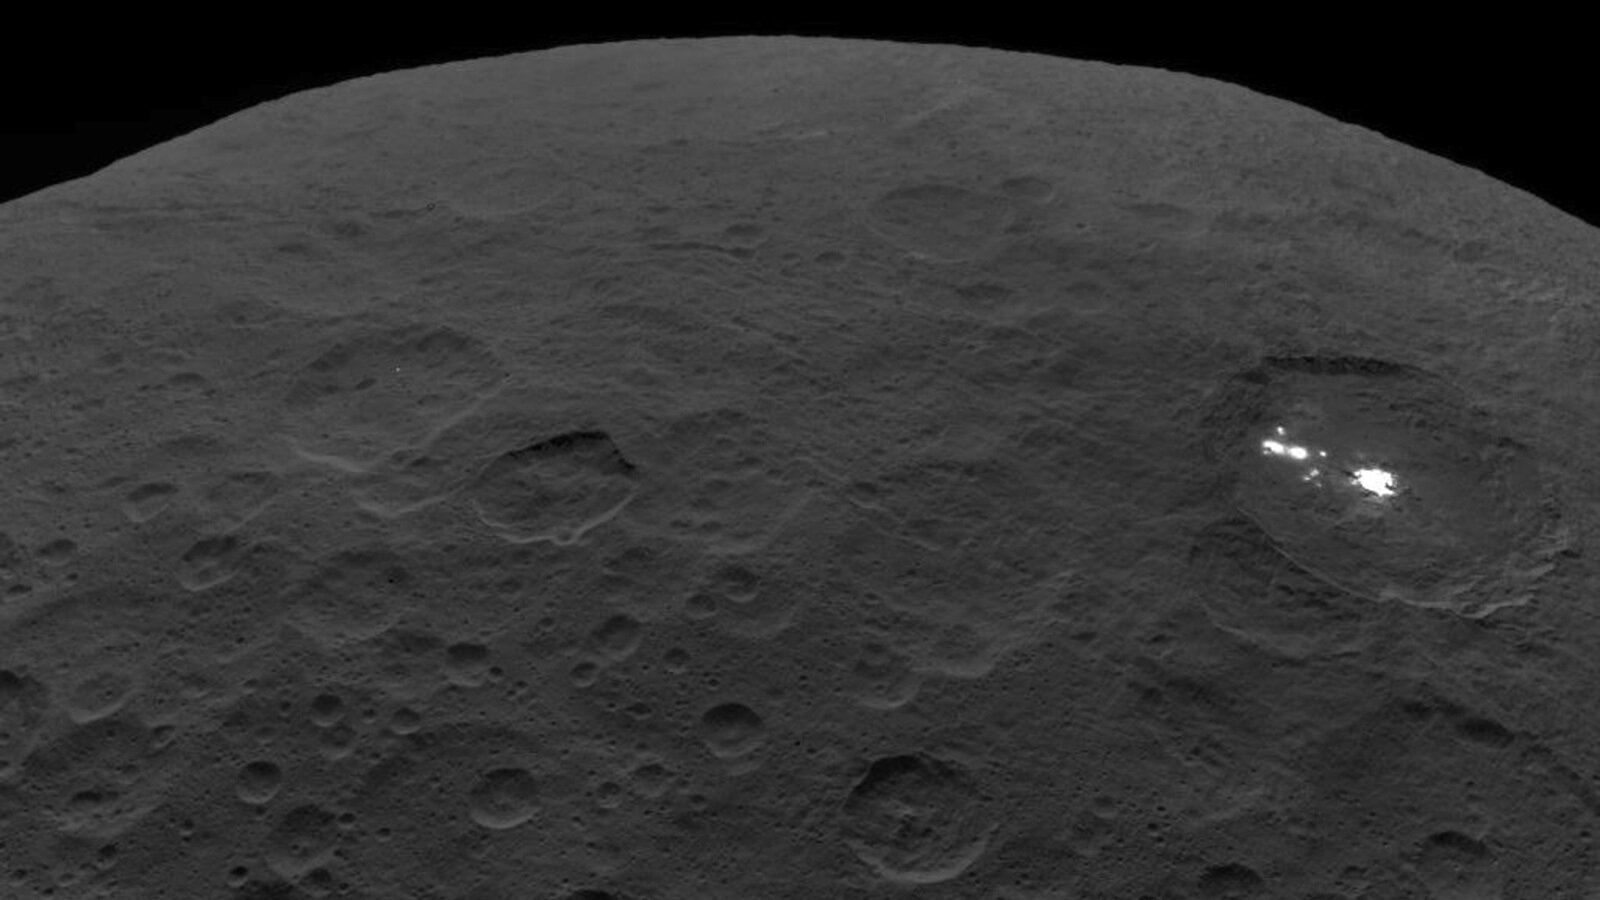 Insulating crust kept cryomagma liquid for millions of years on nearby dwarf planet